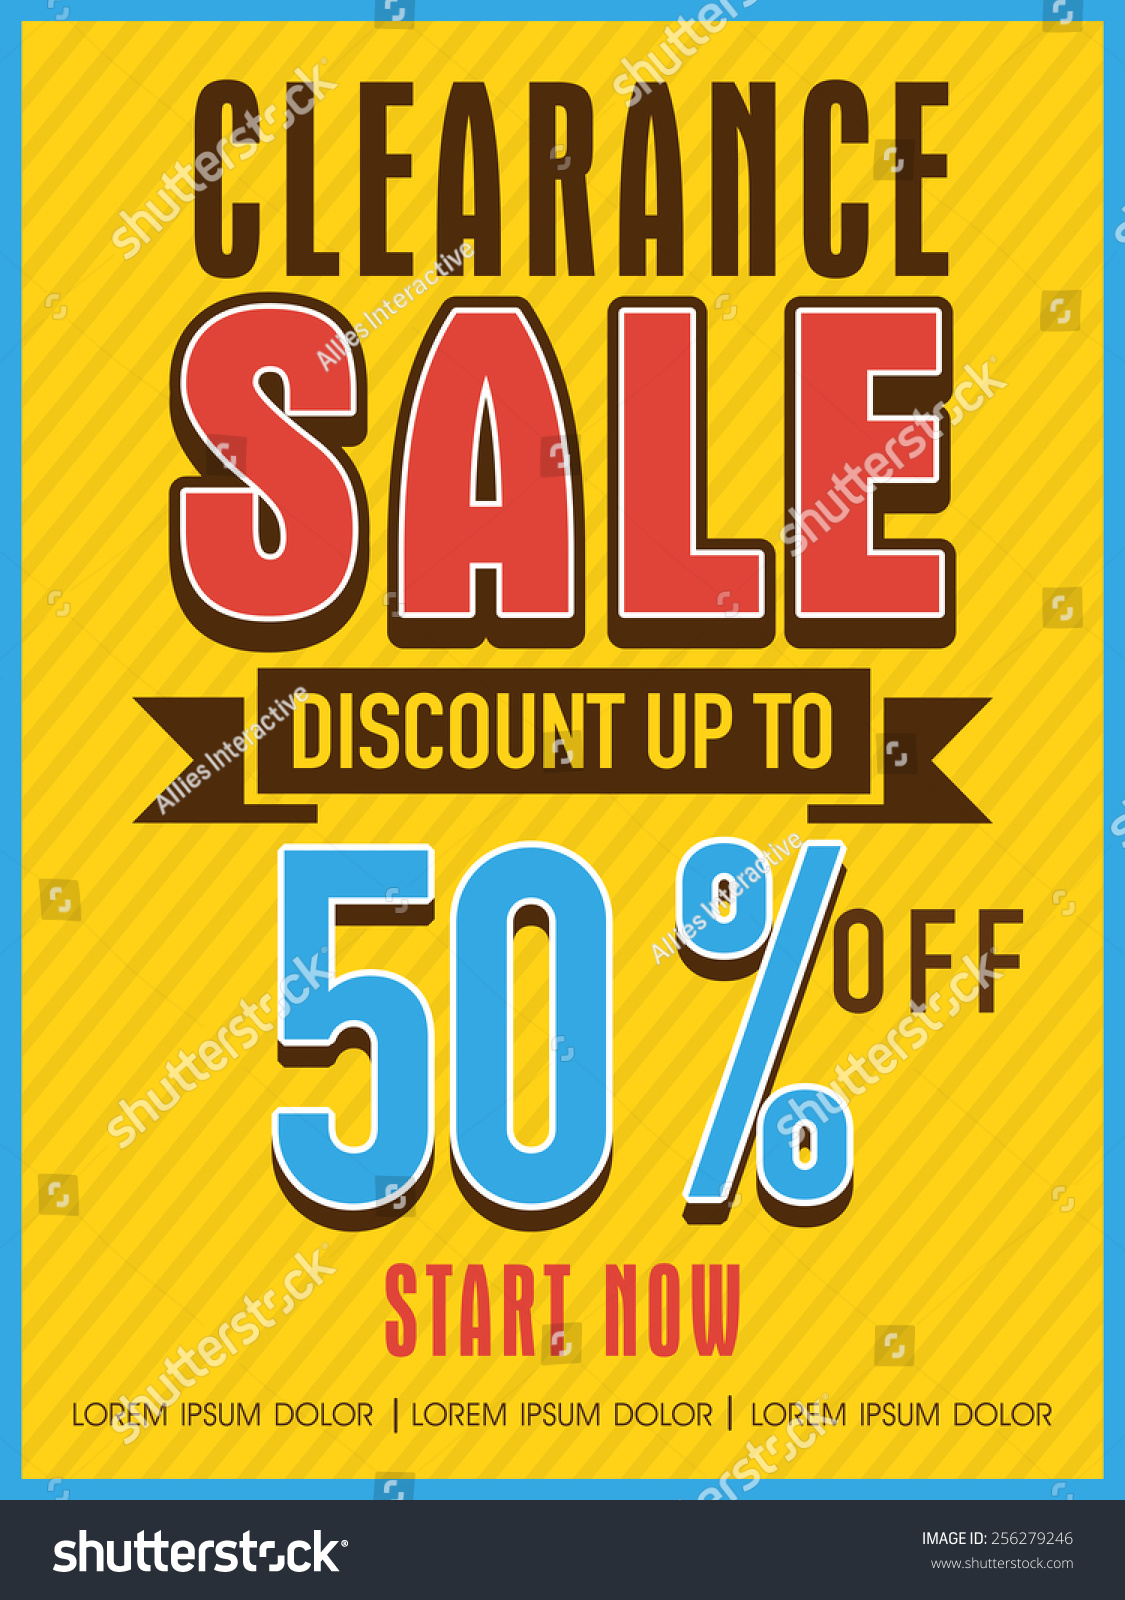 clearance discount offer flyer banner stock vector  clearance discount offer flyer banner or template design for your business